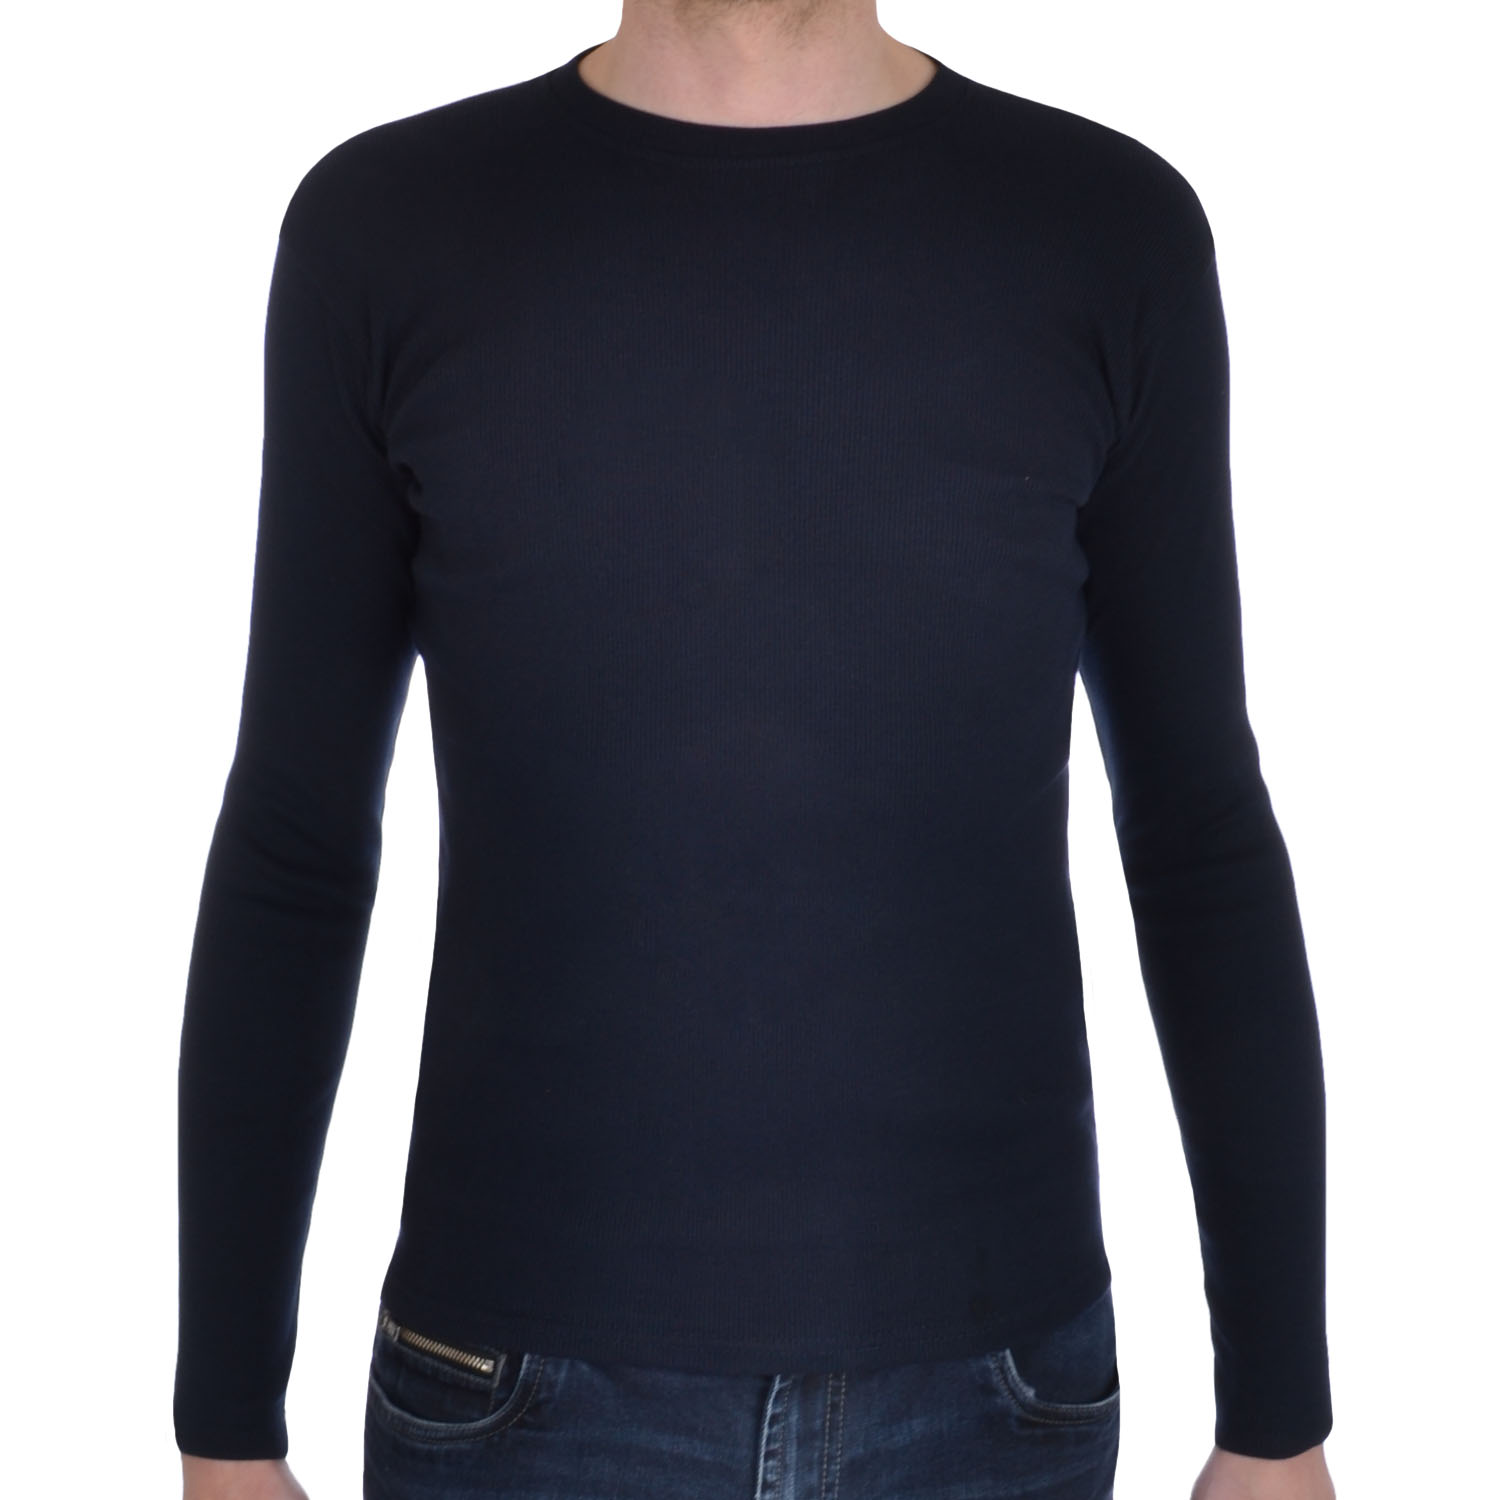 Check out our men's insanely soft dailywear t-shirts! Sale. Fabric: Stretch Jersey, 90% Combed Cotton / 10% Modal.